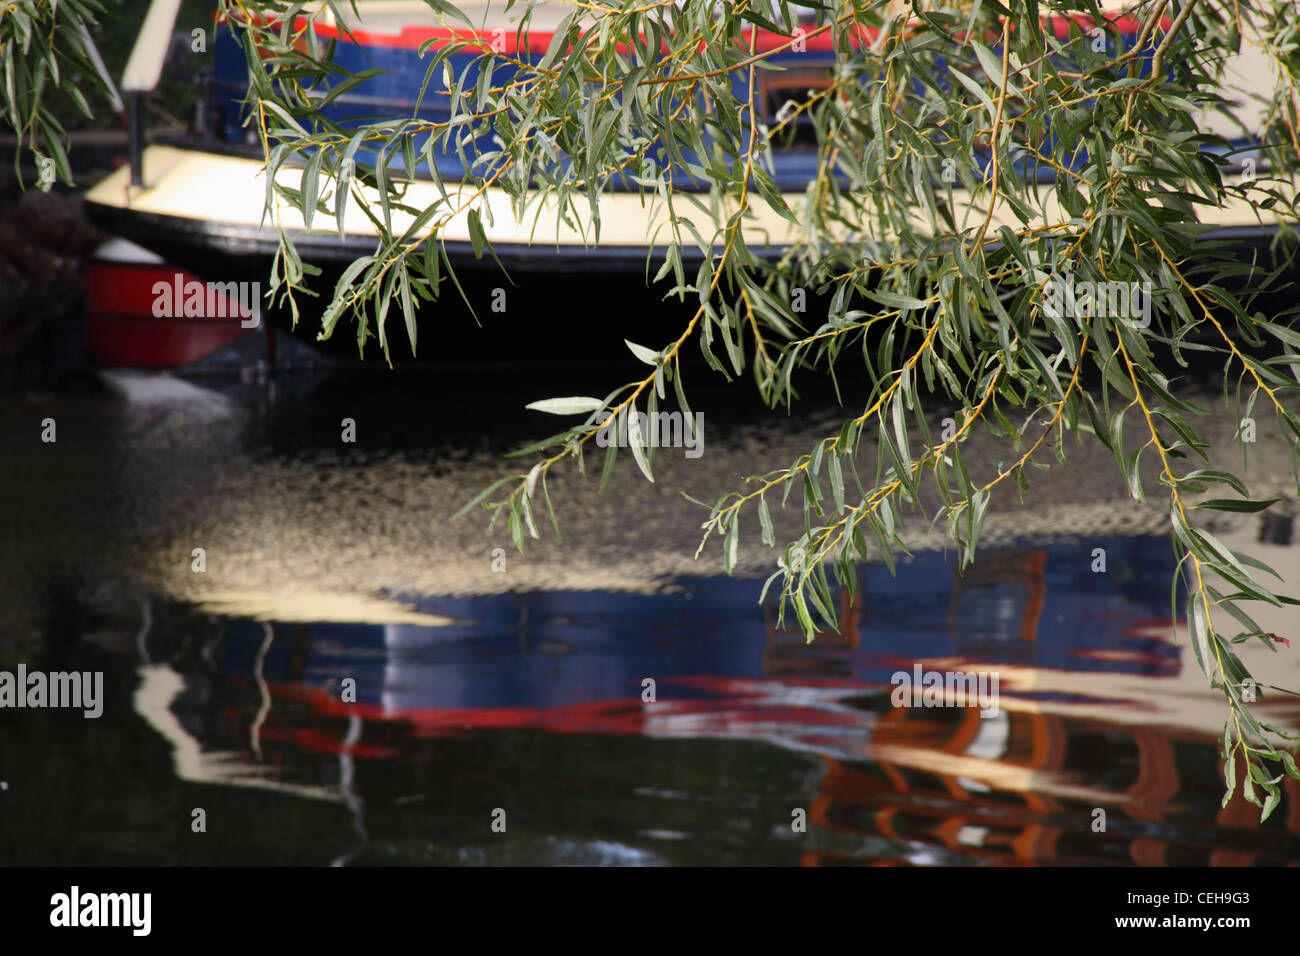 A narrowboat reflected in the waters of the river avon near Bidford on Avon, Warwickshire, with a branch of willow - Stock Image